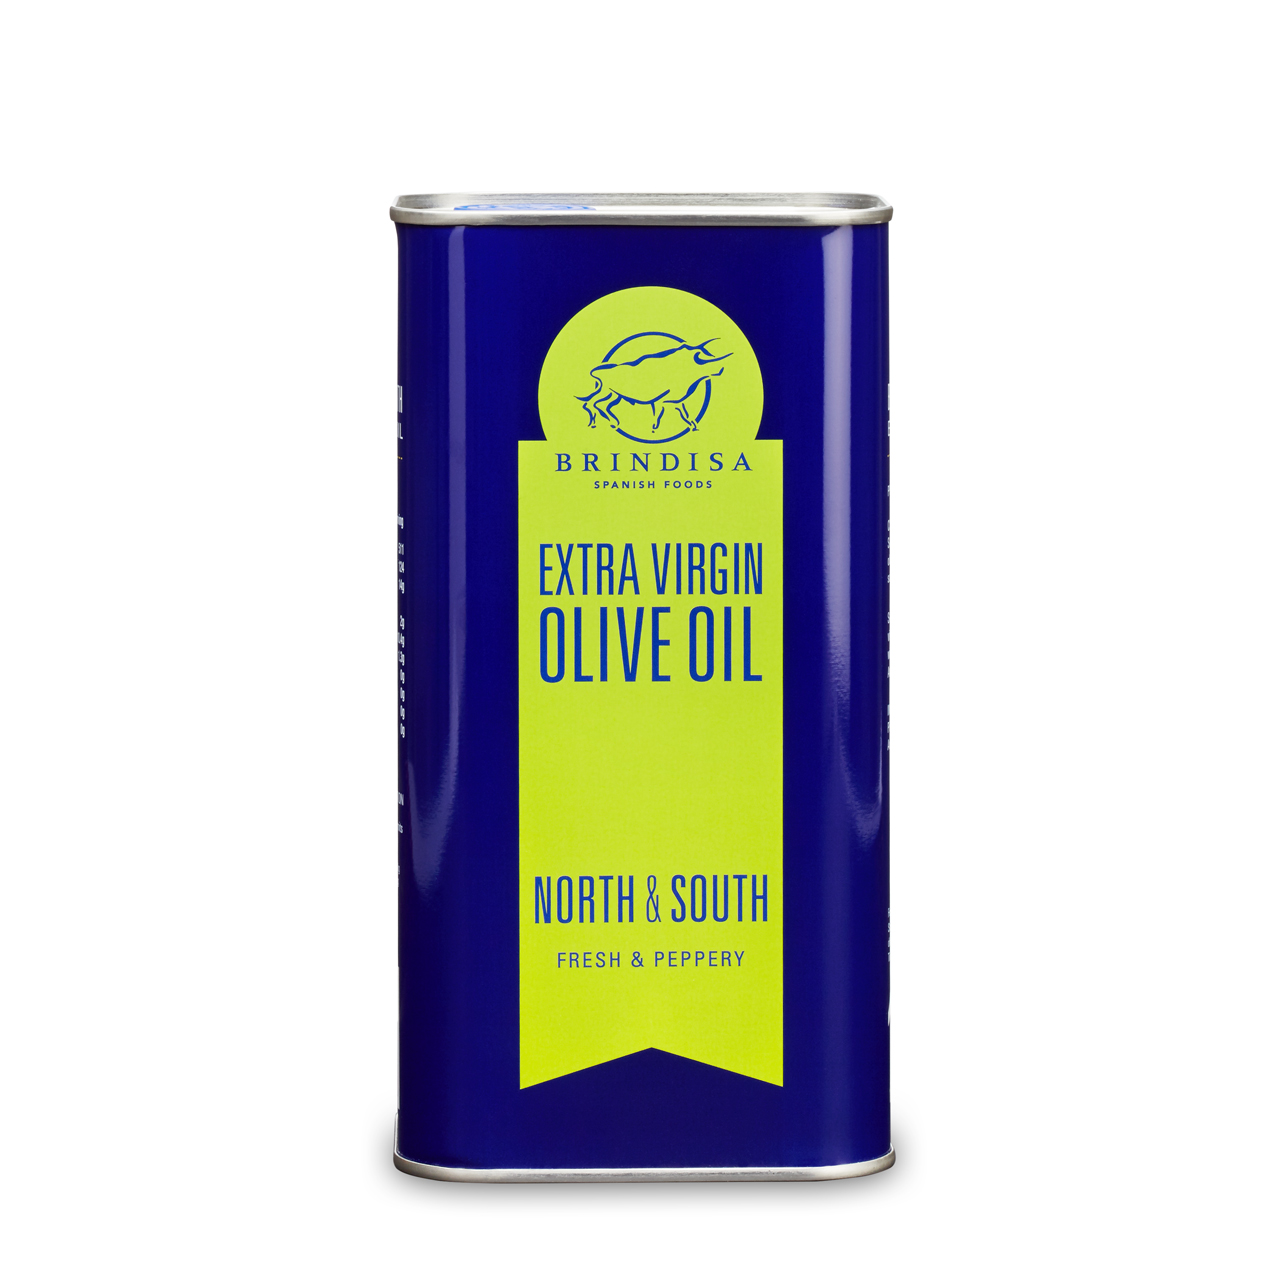 Brindisa North & South Olive Oil